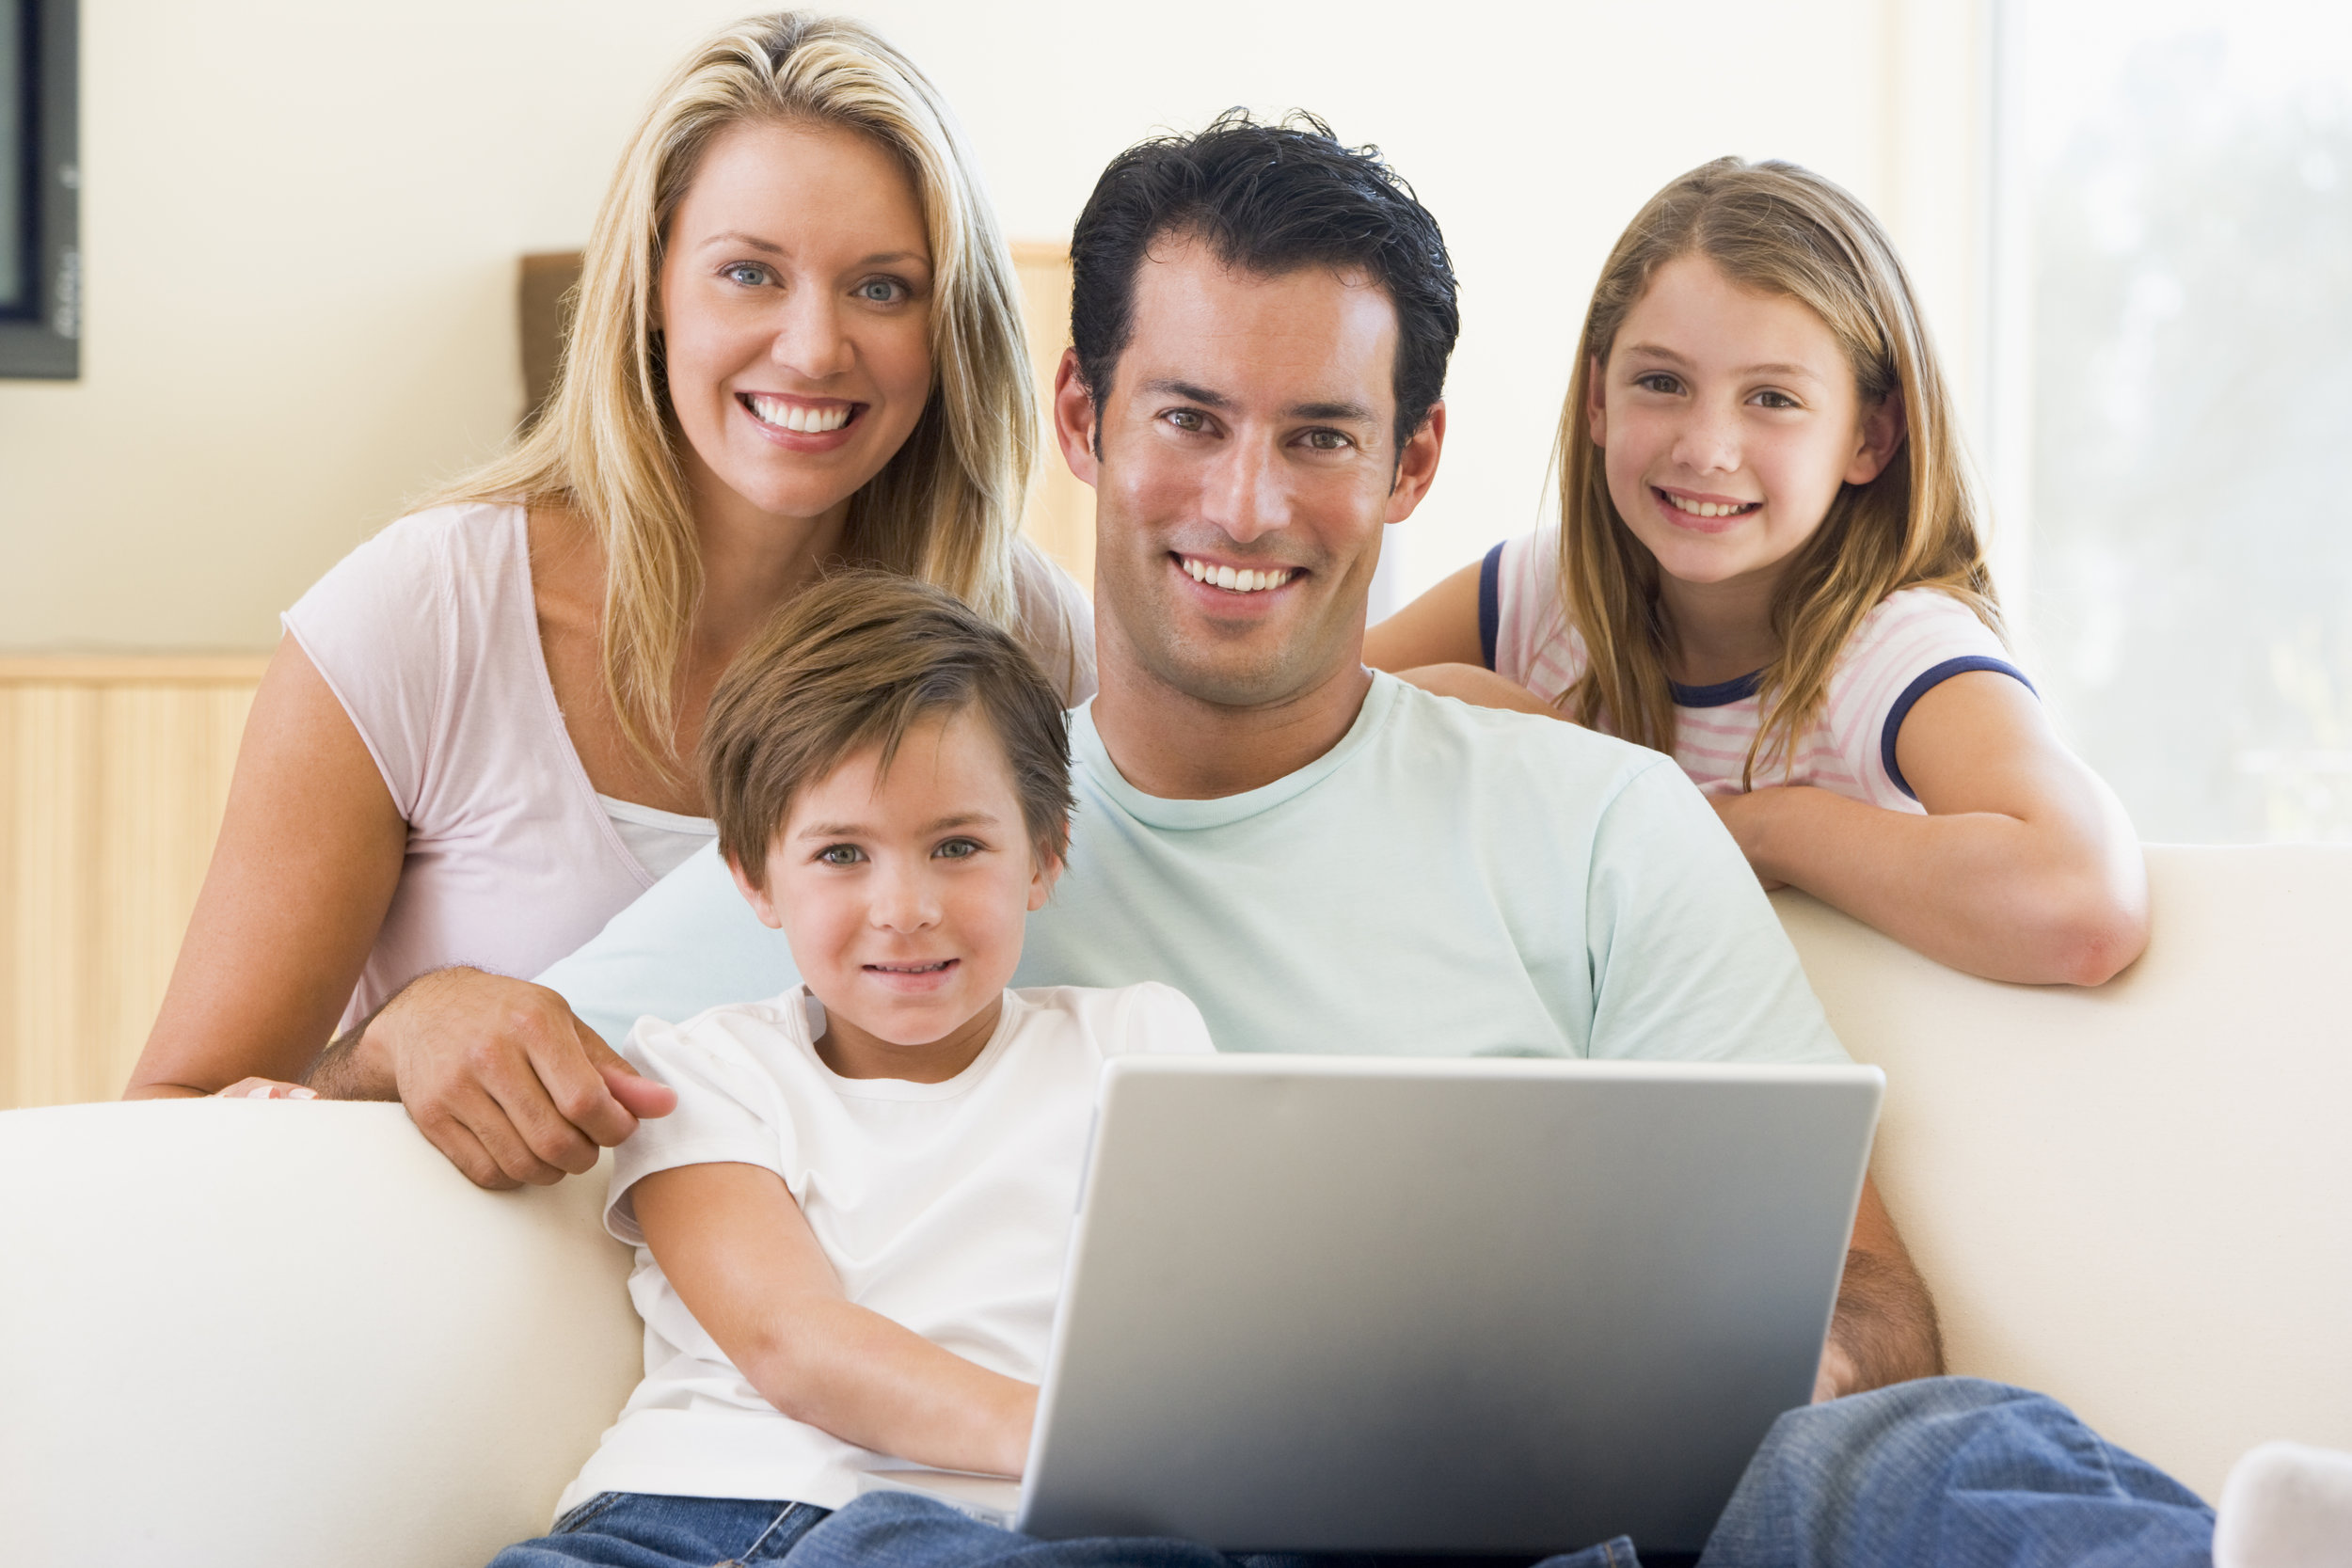 family-in-living-room-with-laptop-smiling_rFI642Cro.jpg